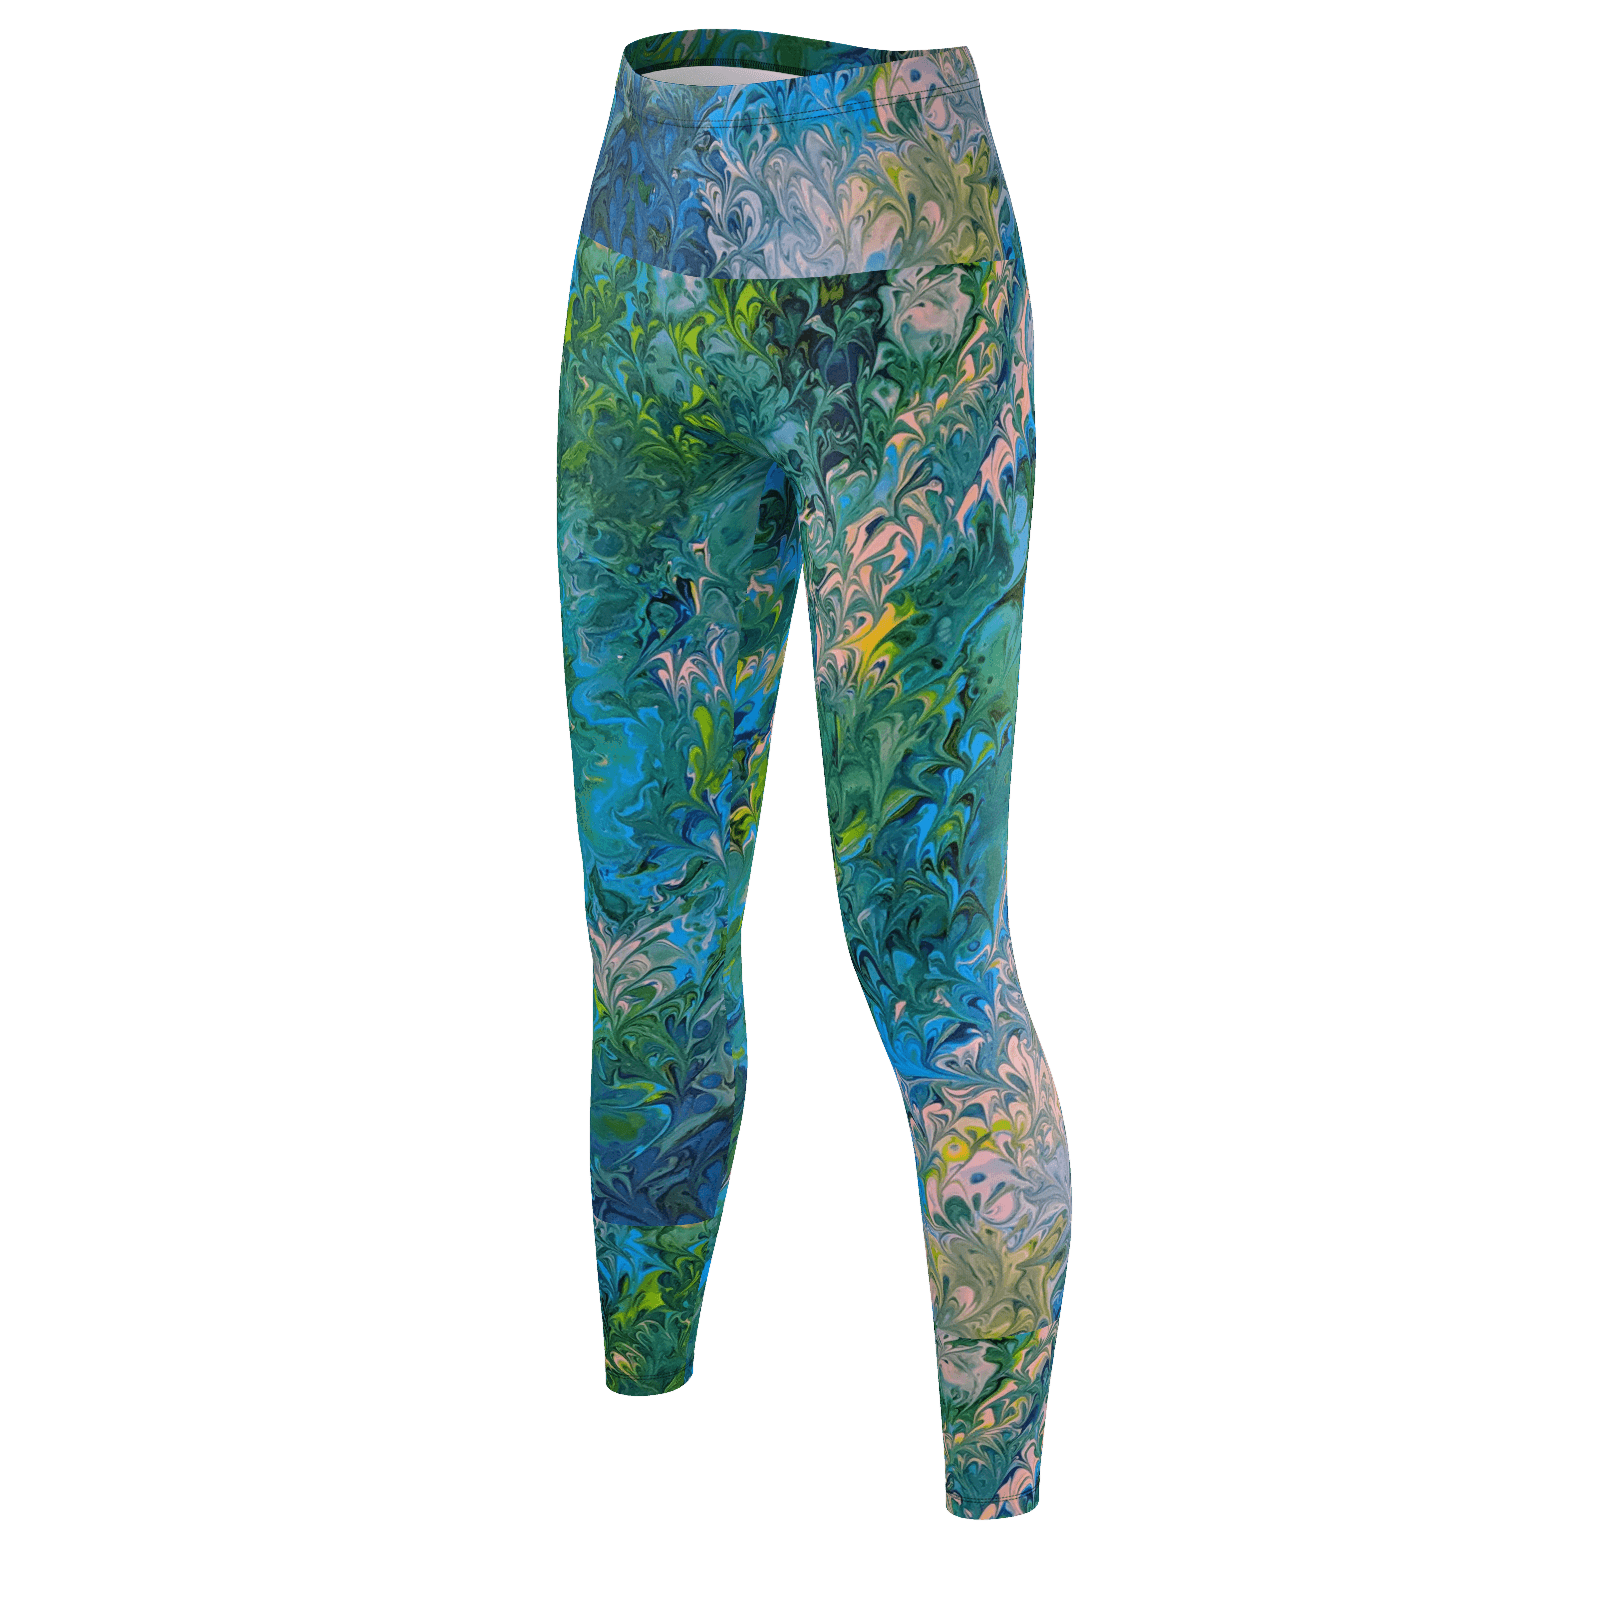 Rhapsody in Blue - Recycled Poly Leggings